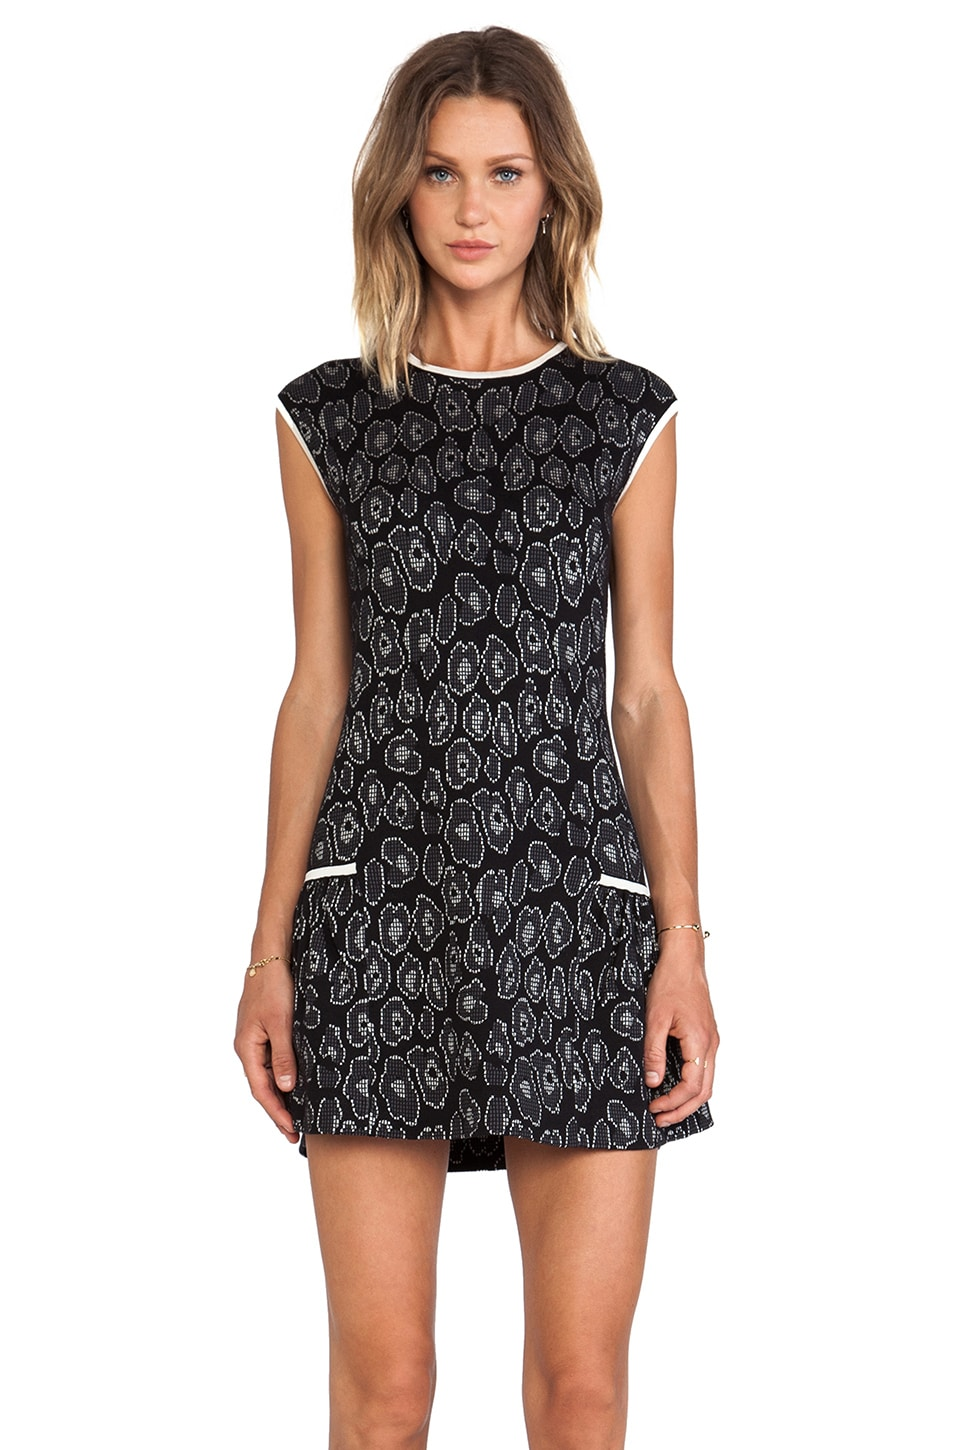 Marc by Marc Jacobs Cassidy Jacquard Sweater Dress in Black Multi